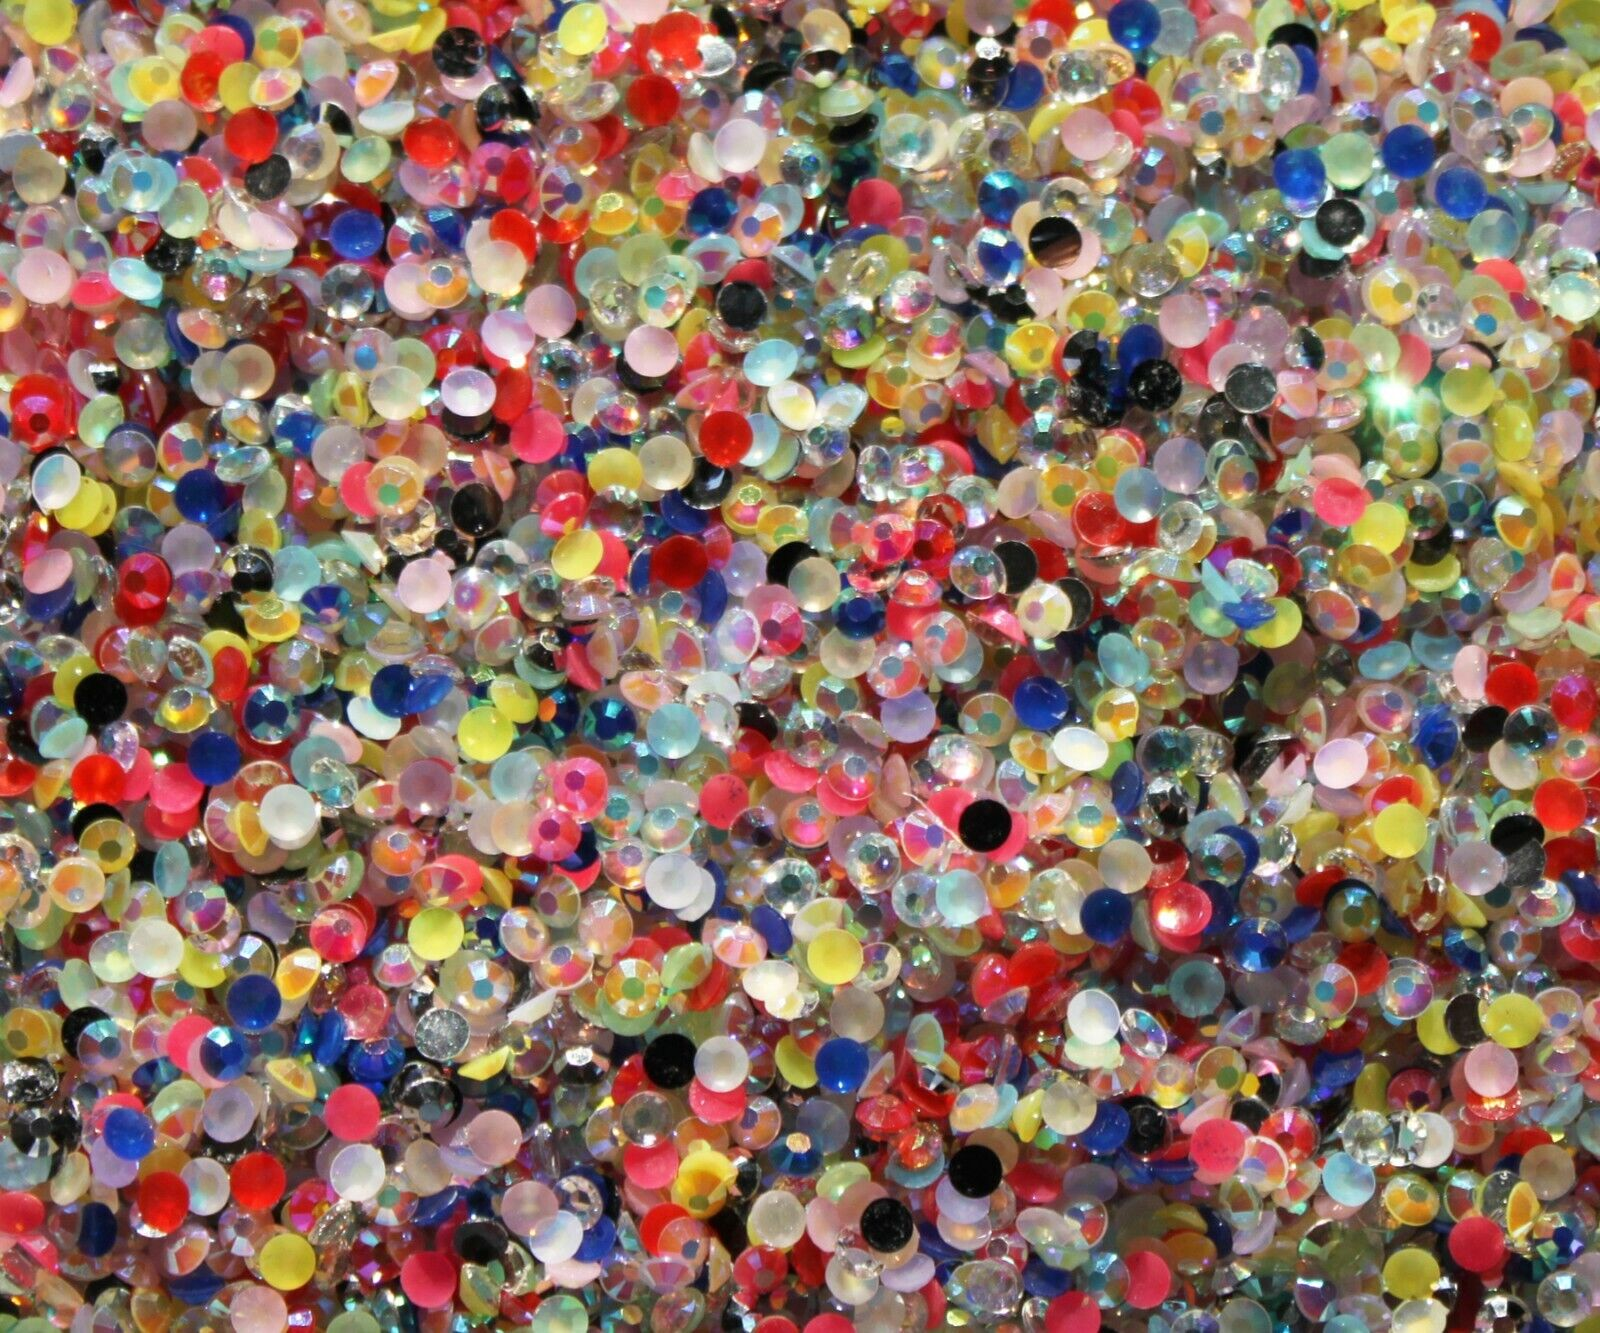 1000 Crystal Flat Back Resin Rhinestones Gems 60 colors, 2mm, 3mm, 4mm, 5mm, 6.5 MIXED AB COLOUR